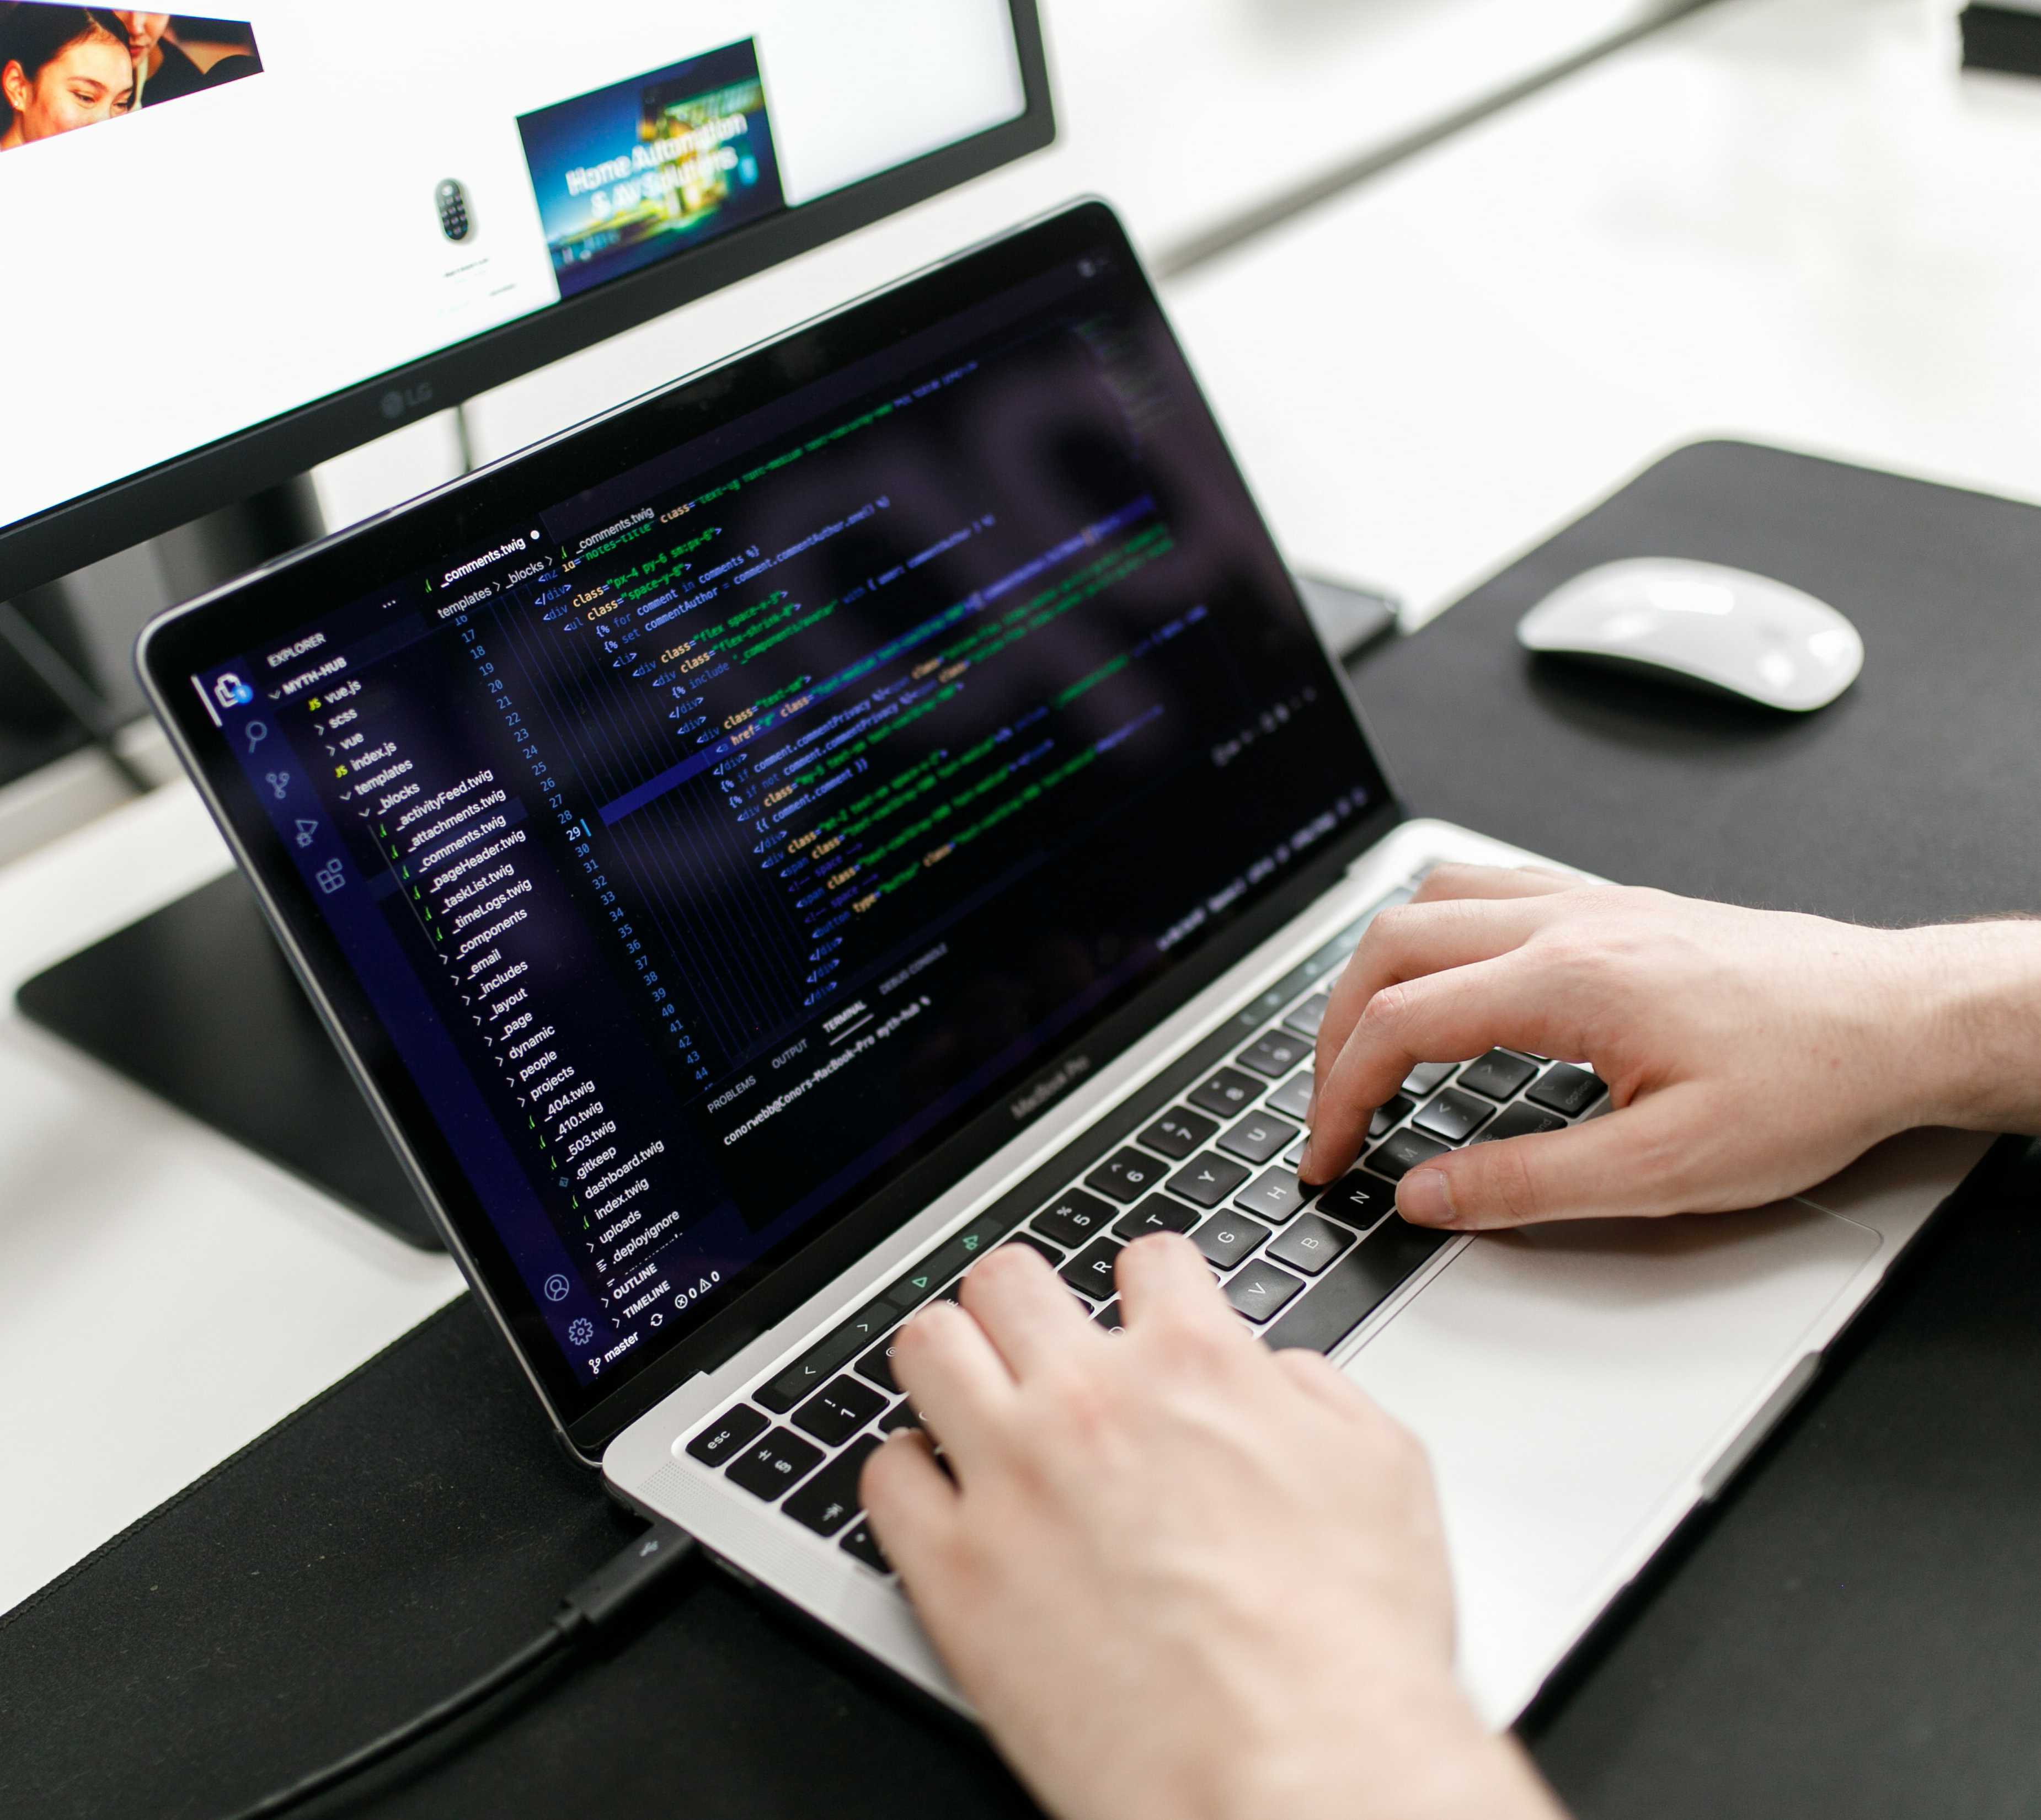 What to expect when starting a software development project